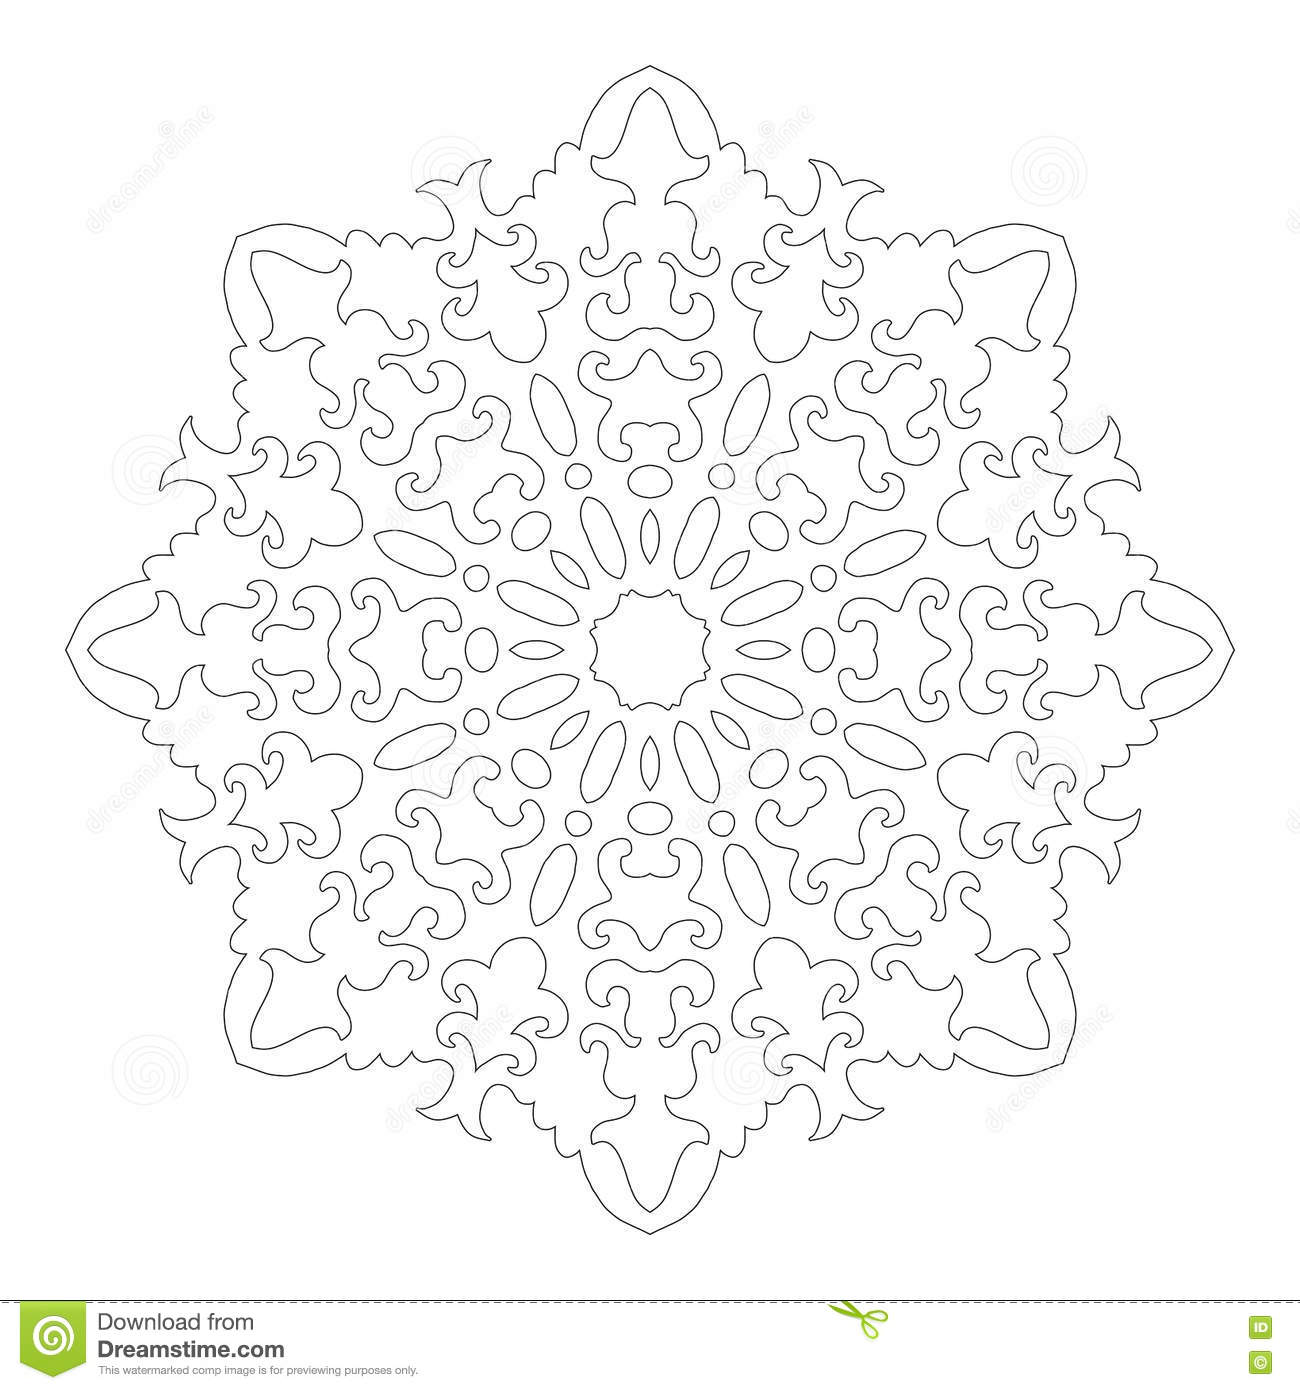 Coloring book snowflake - Coloring Book Snowflake Round Ornament For Coloring Books Black White Pattern Lace Snowflake